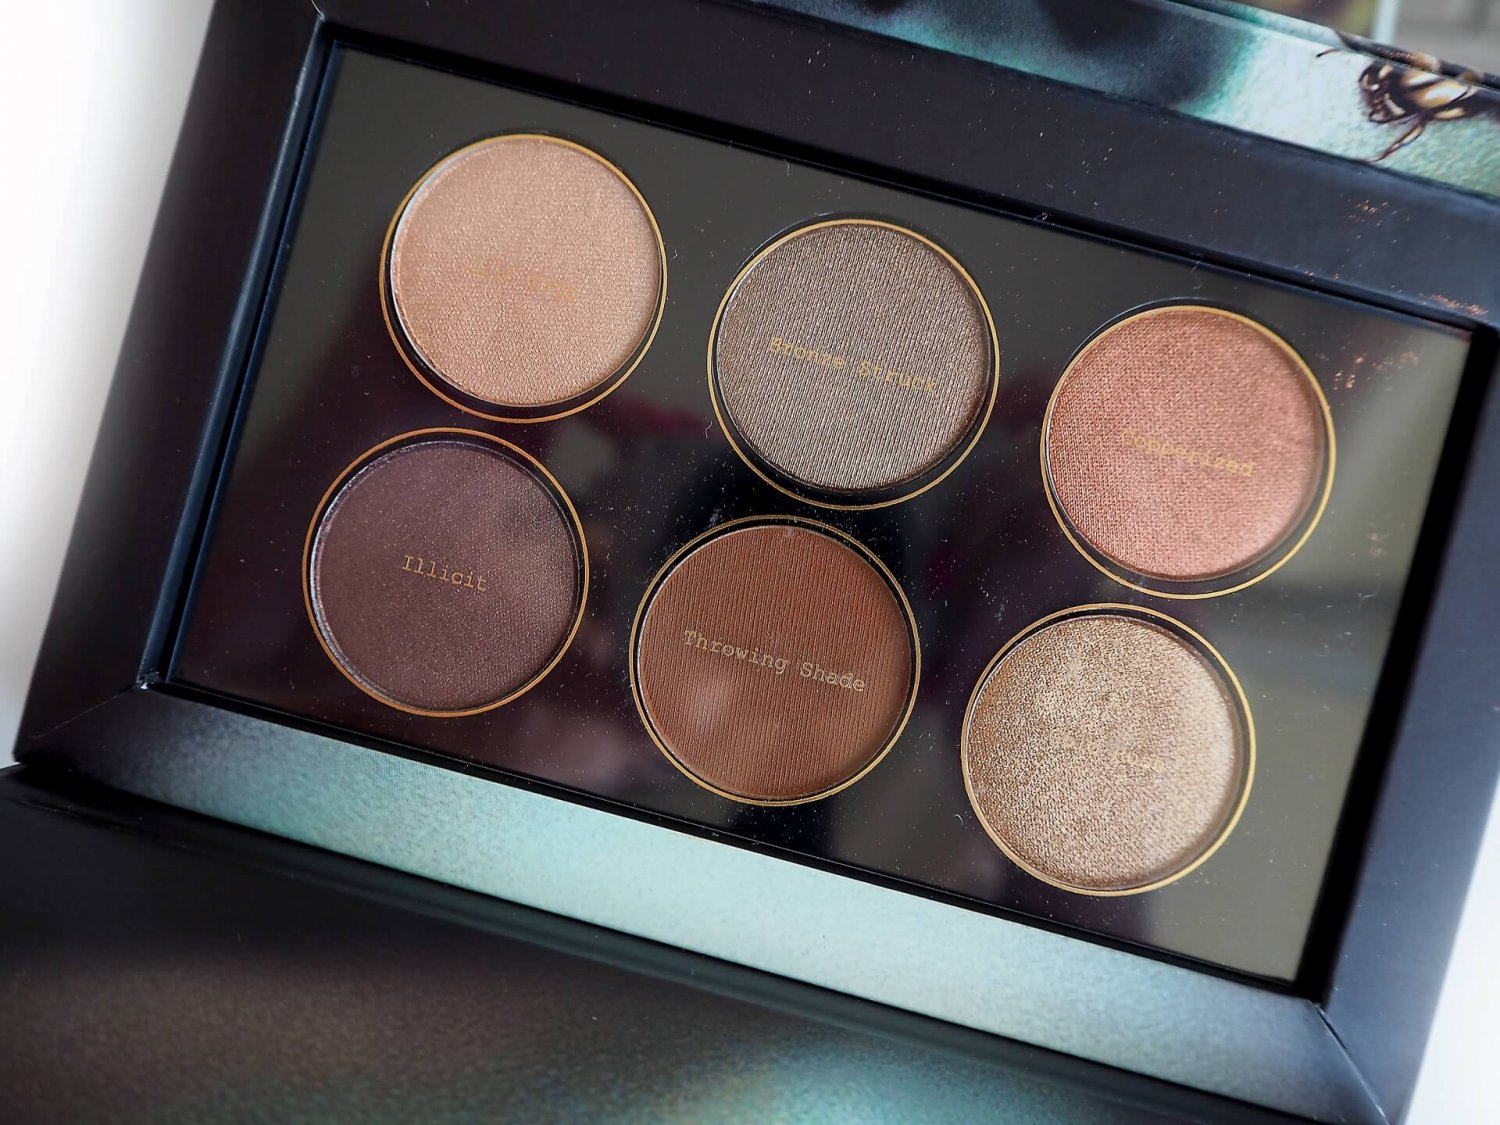 Pat McGrath Bronze Ambition Palette